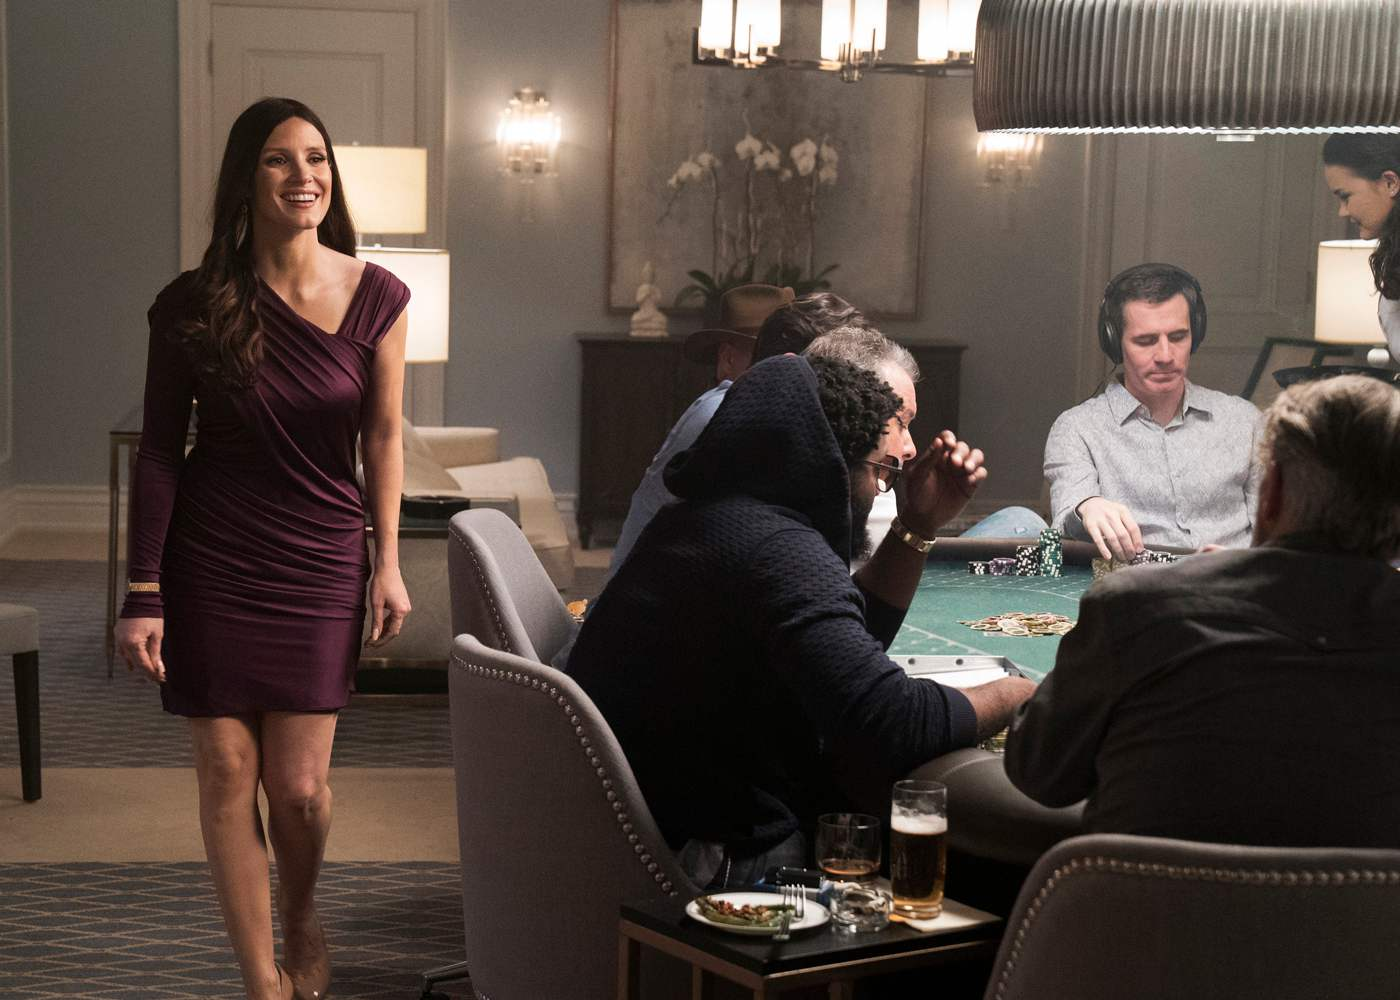 WATCH: Trailer for Aaron Sorkin's Directorial Debut Molly's Game